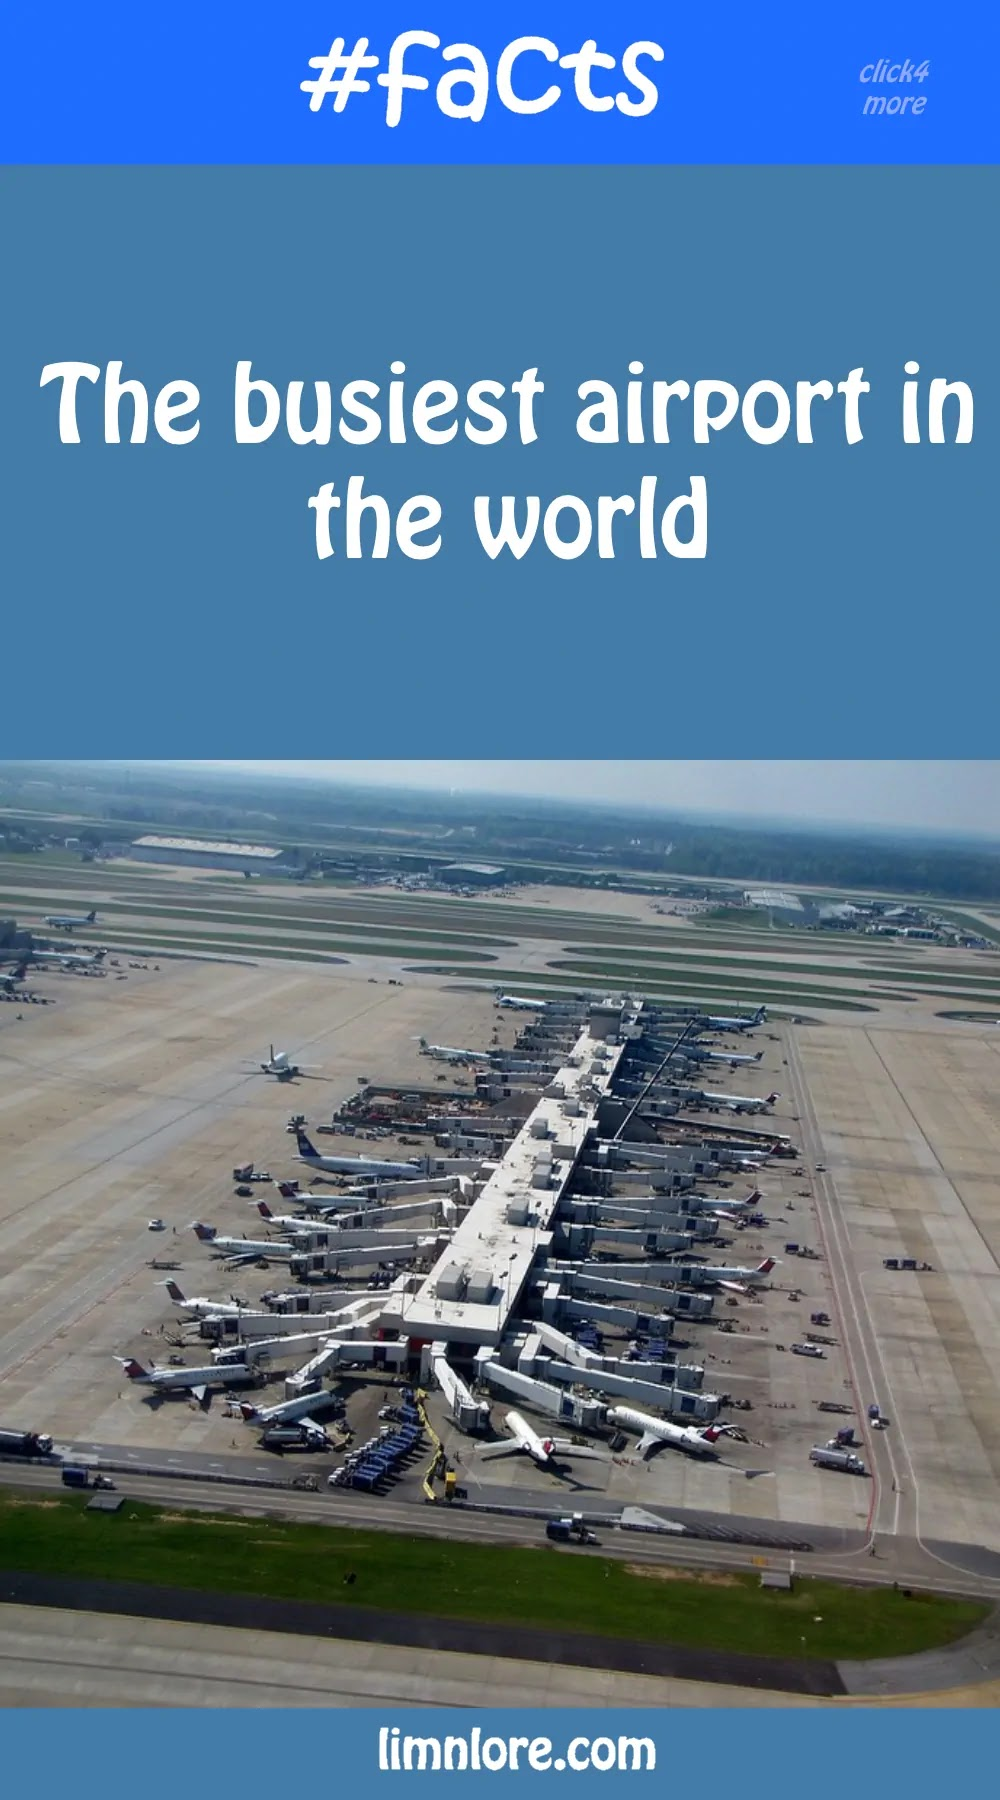 the Busiest airport in the world facts